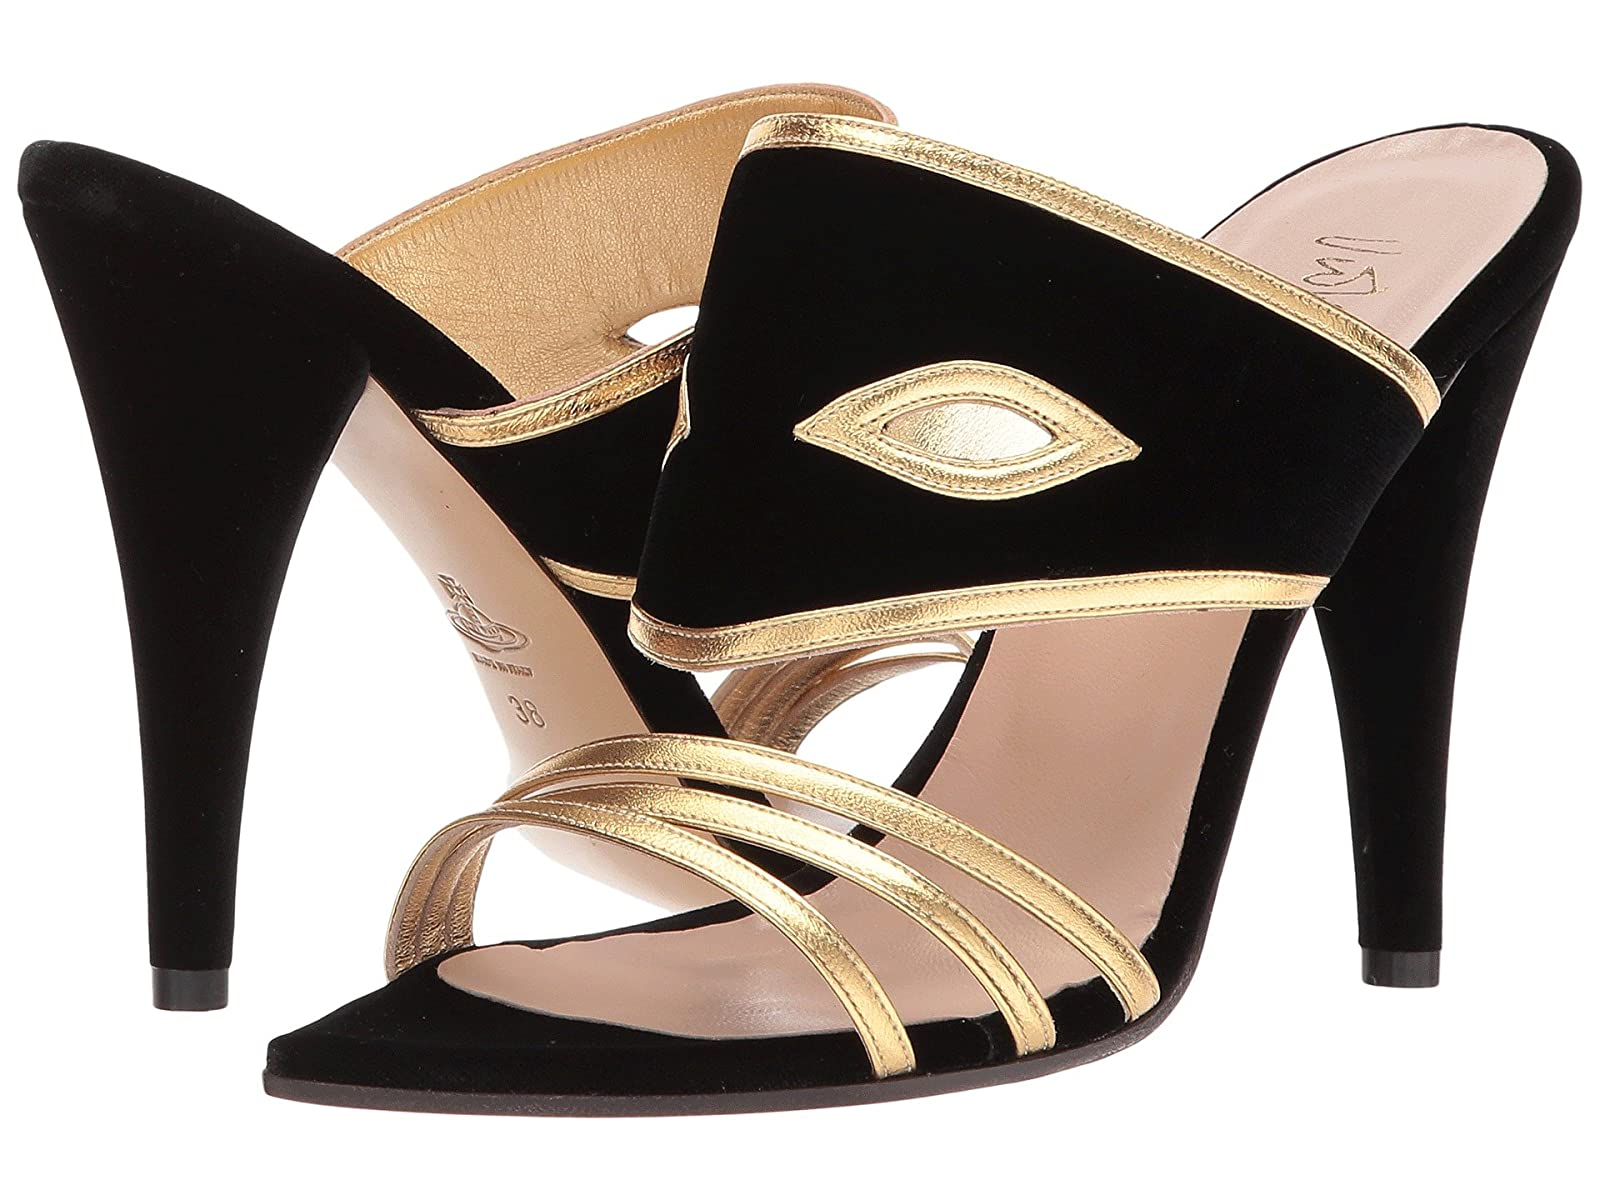 Vivienne Westwood Masque SandalsCheap and distinctive eye-catching shoes